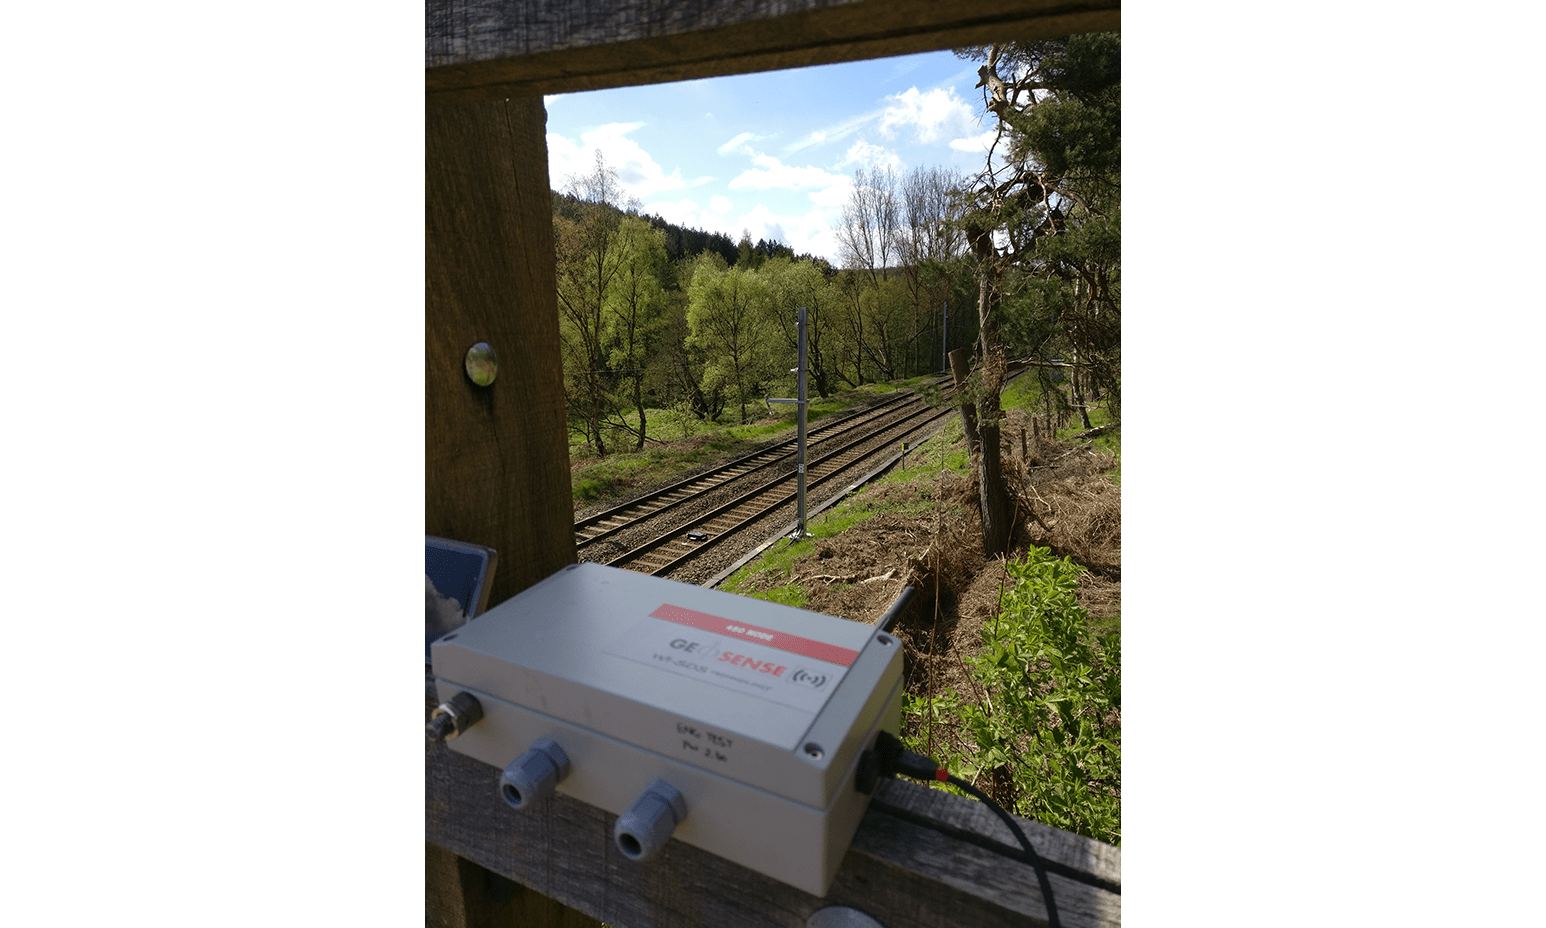 Signal coverage testing from bridge of WI-SOS 480 system on the Chase Line